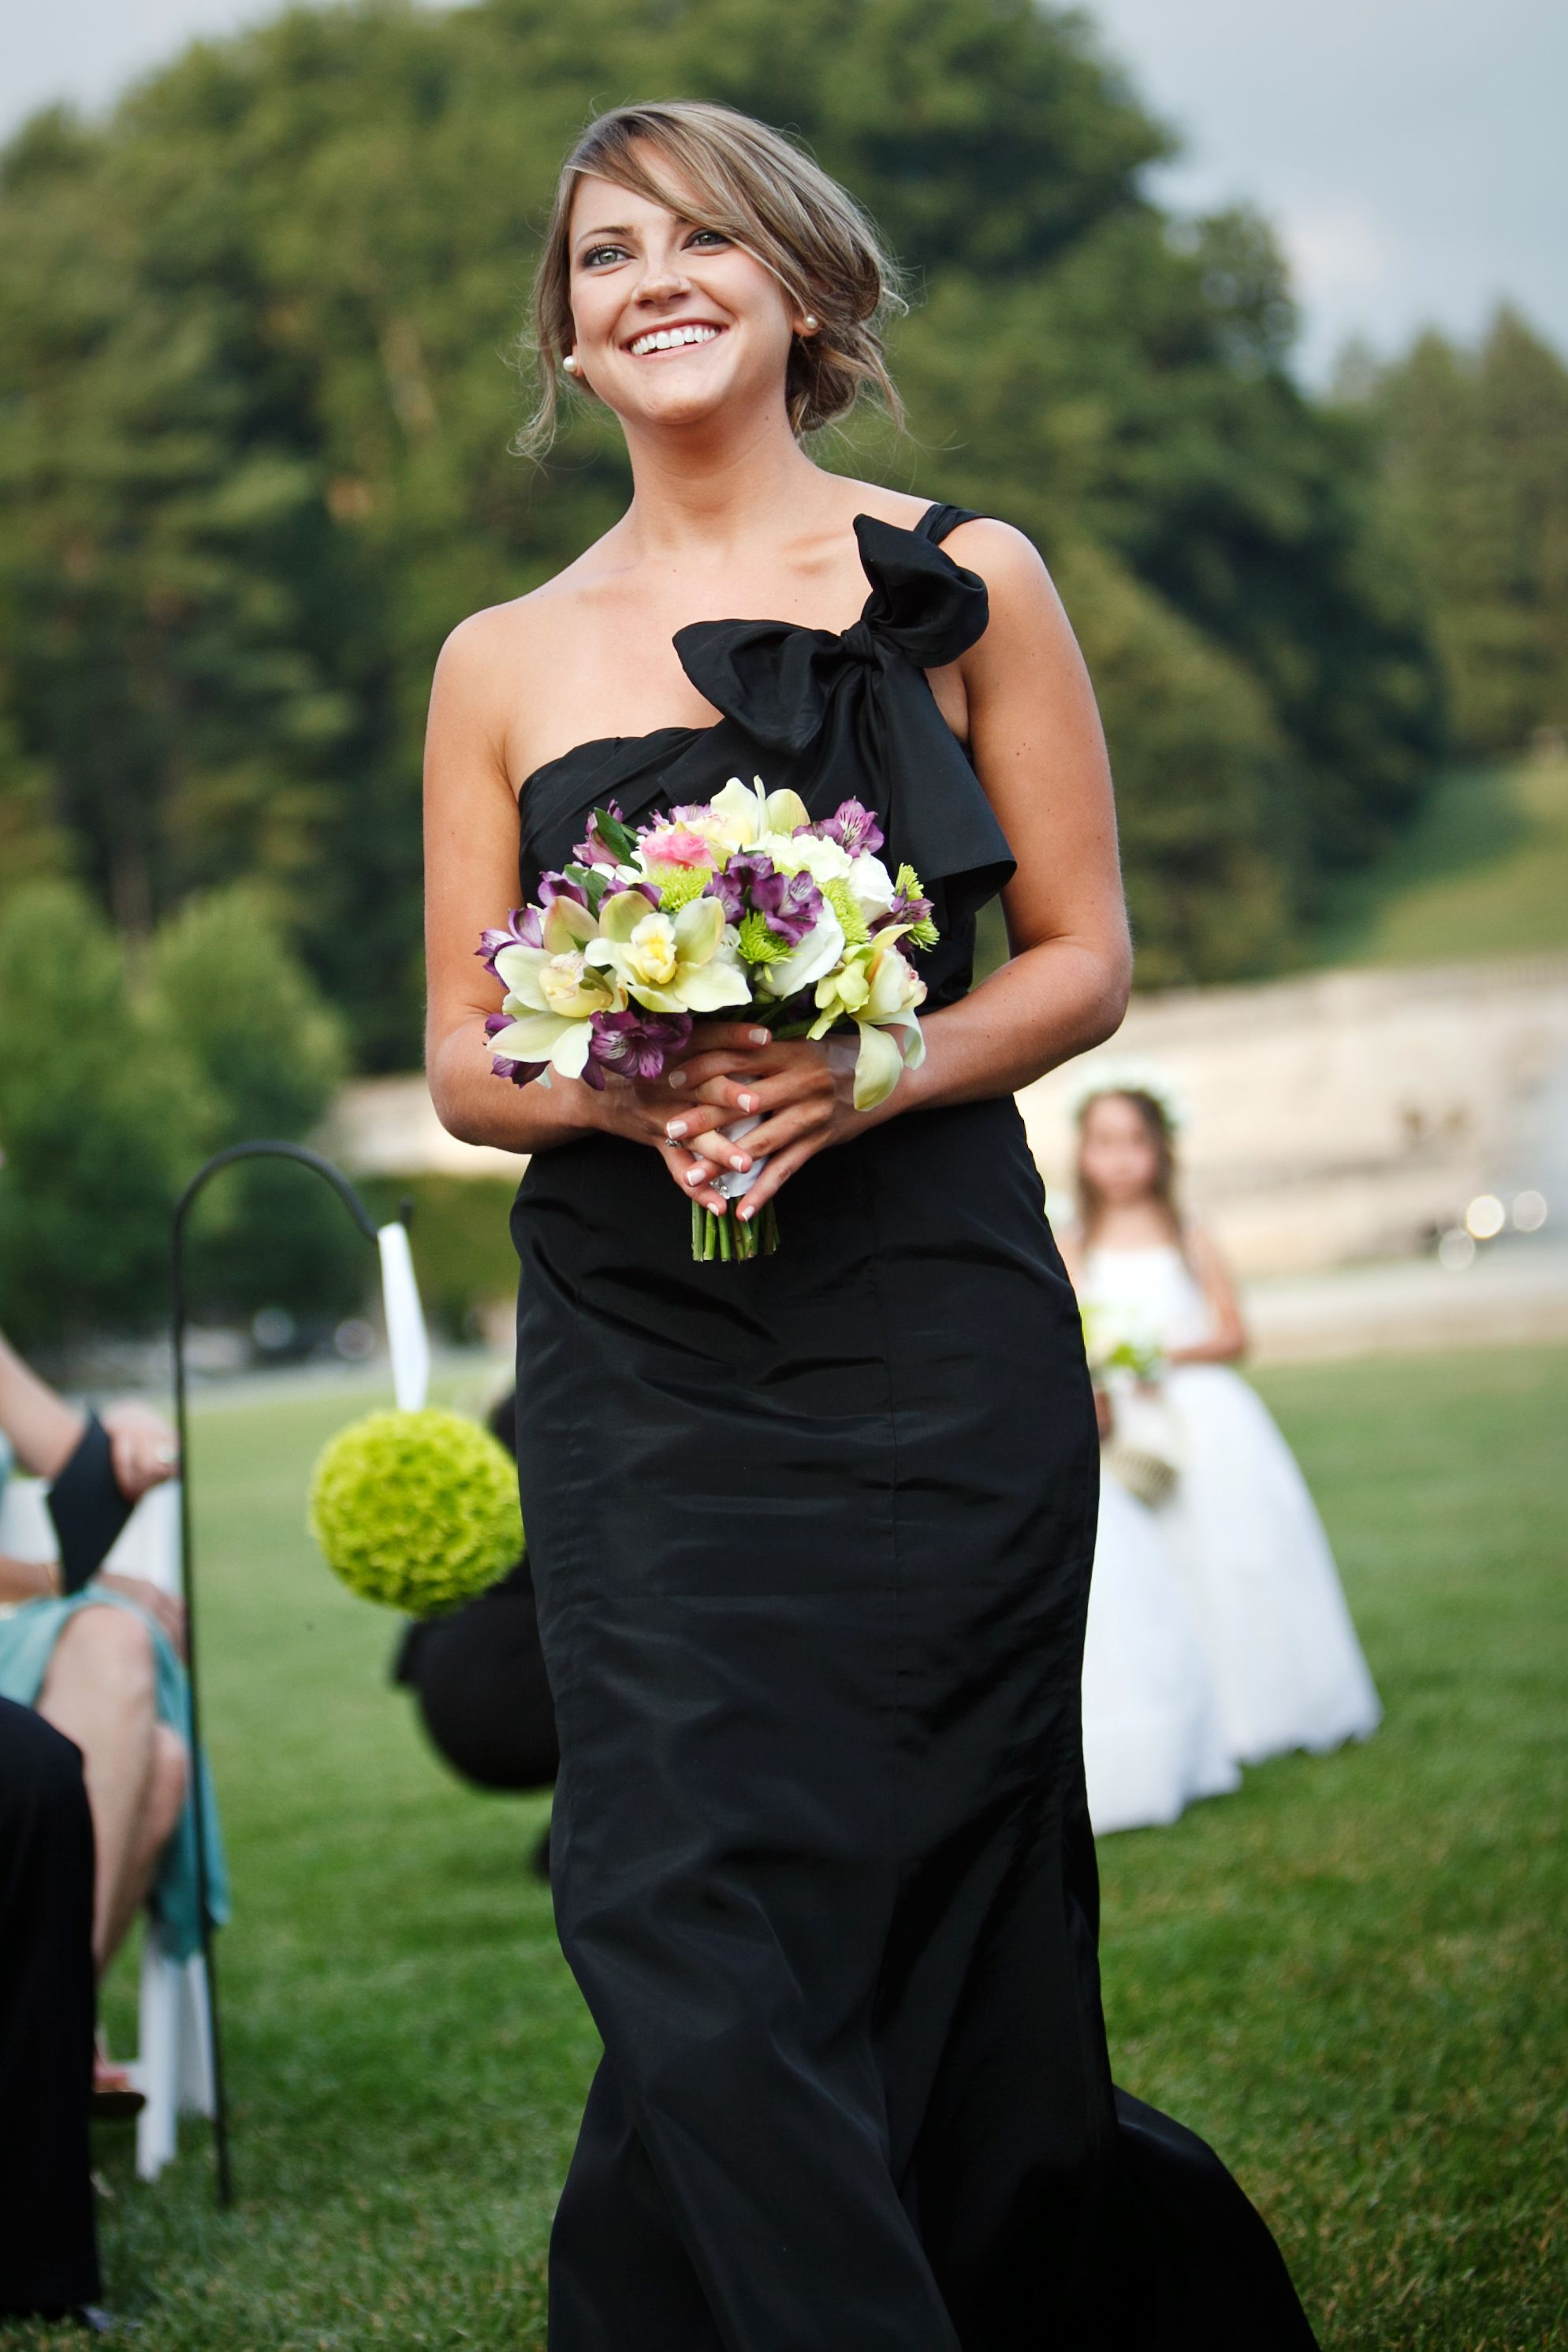 Black bridesmaid dress green and purple flowers bouquet black bridesmaid dress green and purple flowers bouquet wedding florals outdoor ceremony ombrellifo Images